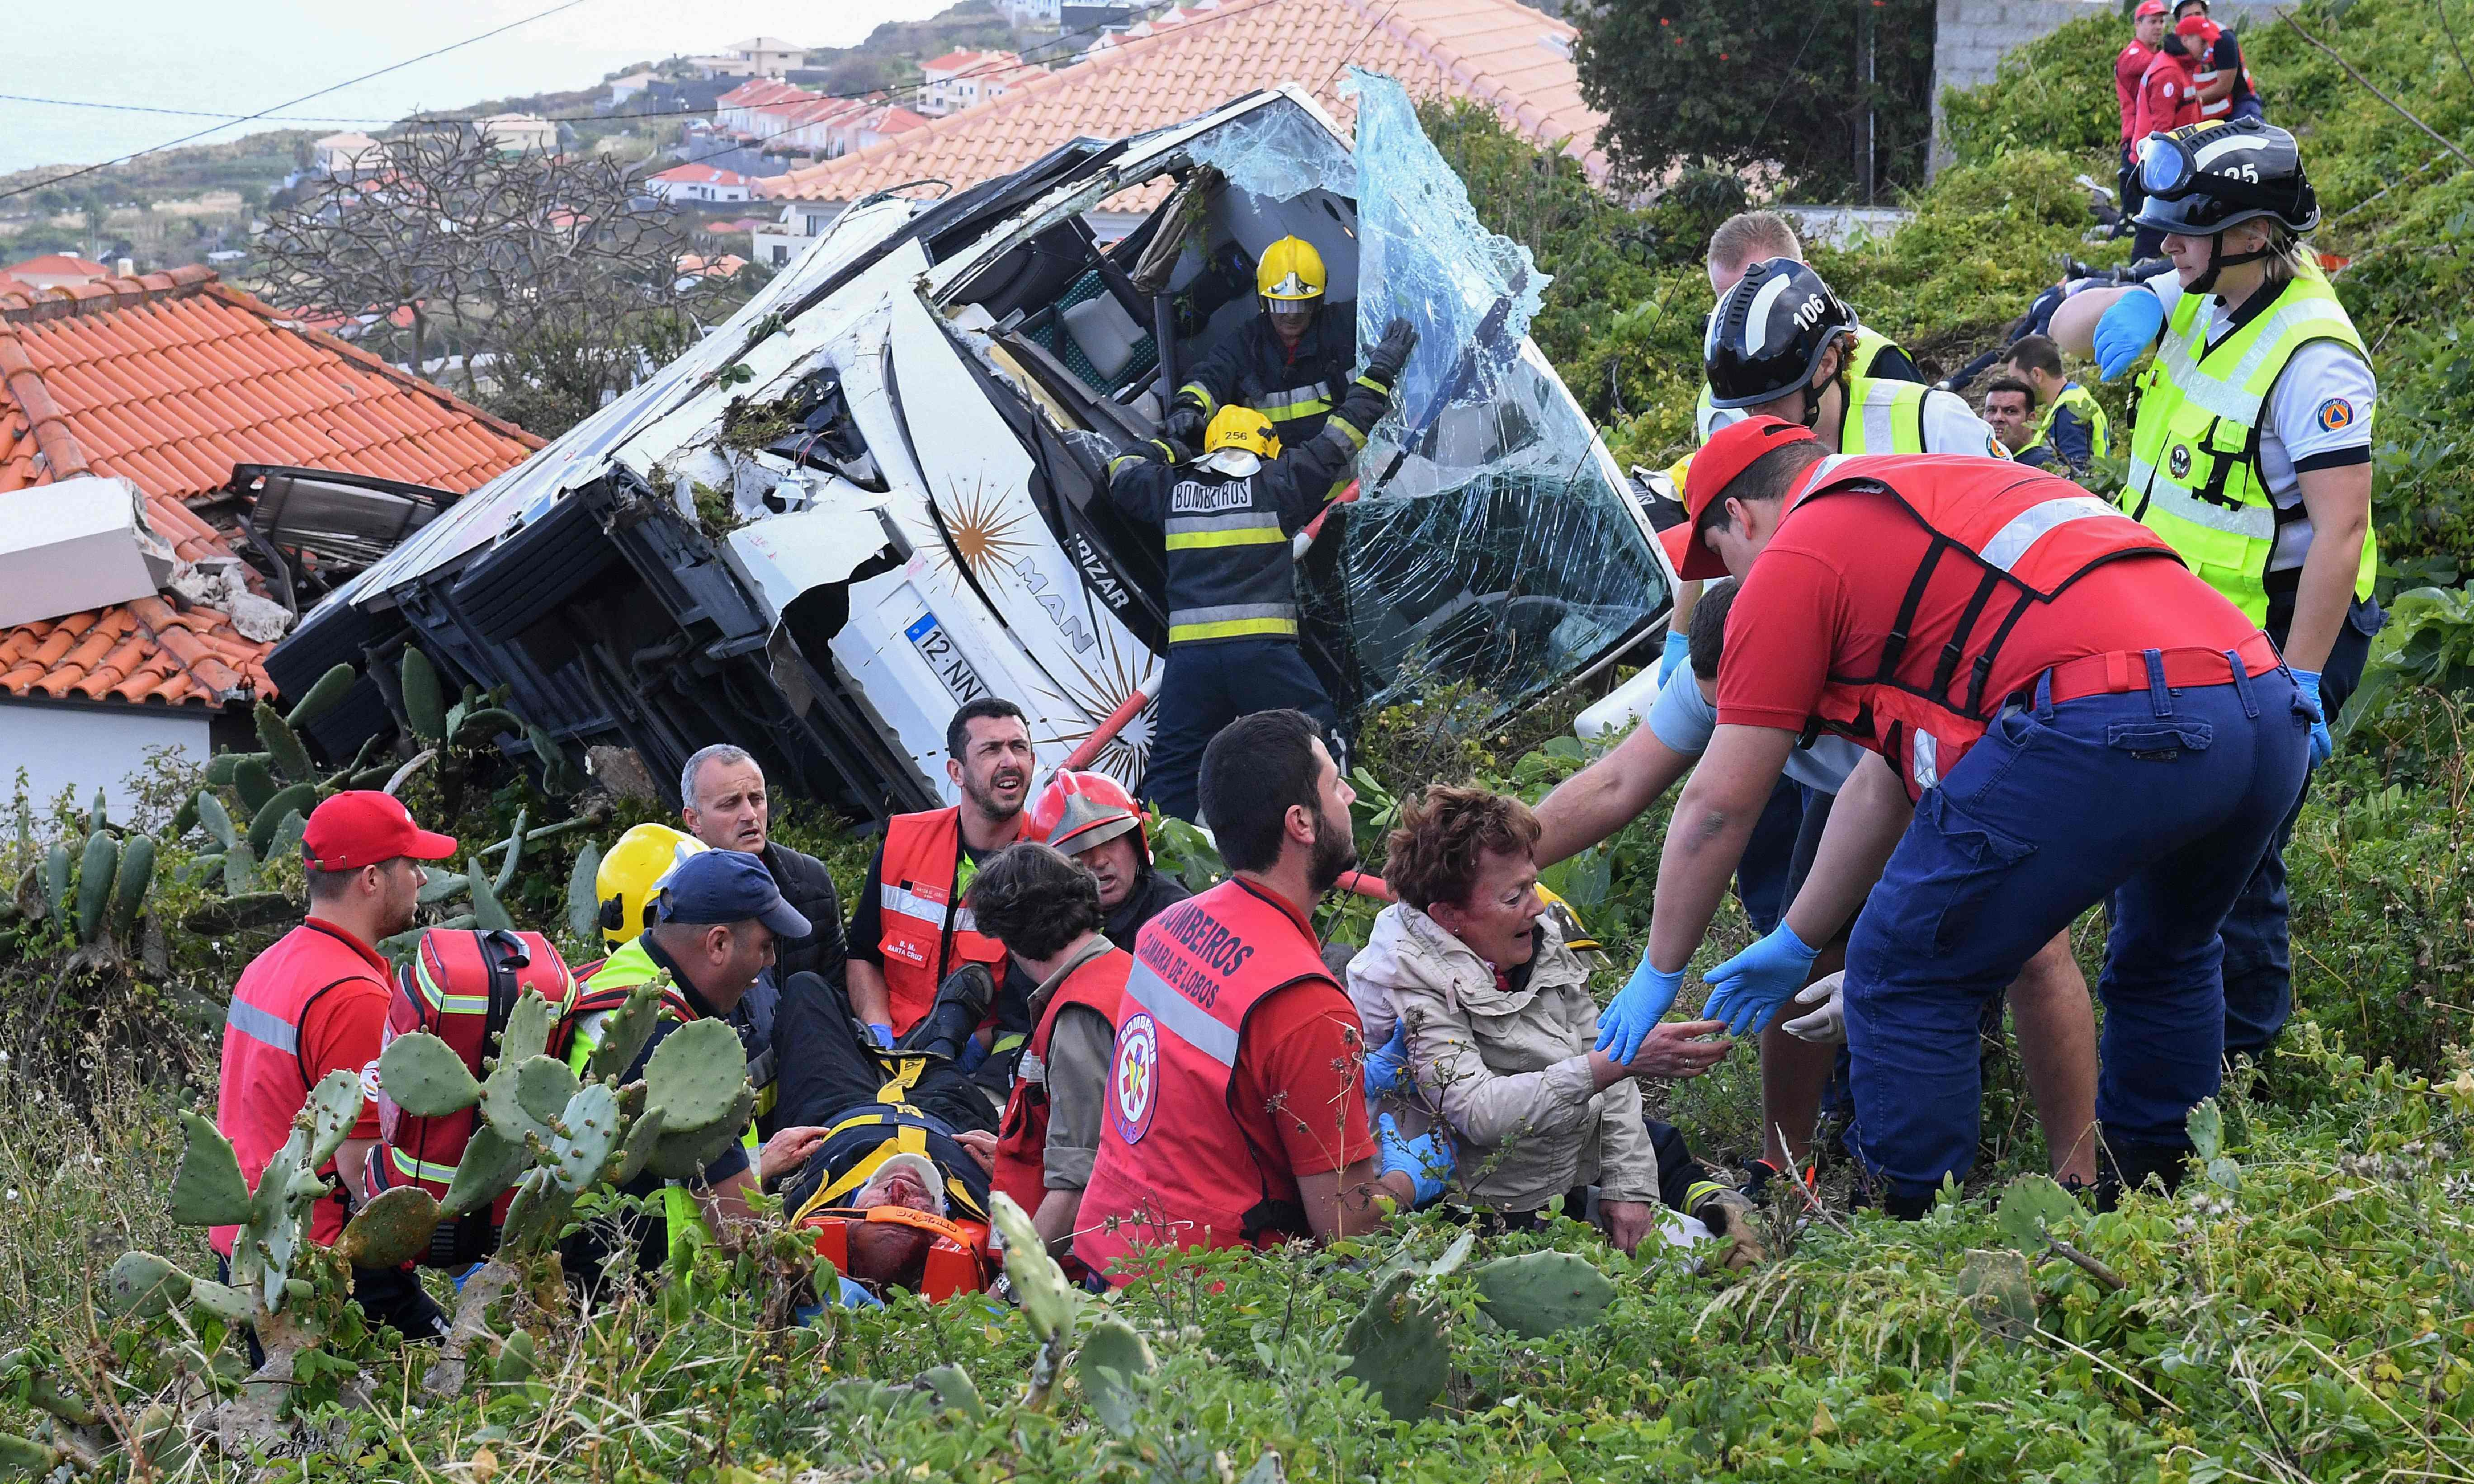 Portugal crash: at least 29 killed on tourist bus in Madeira